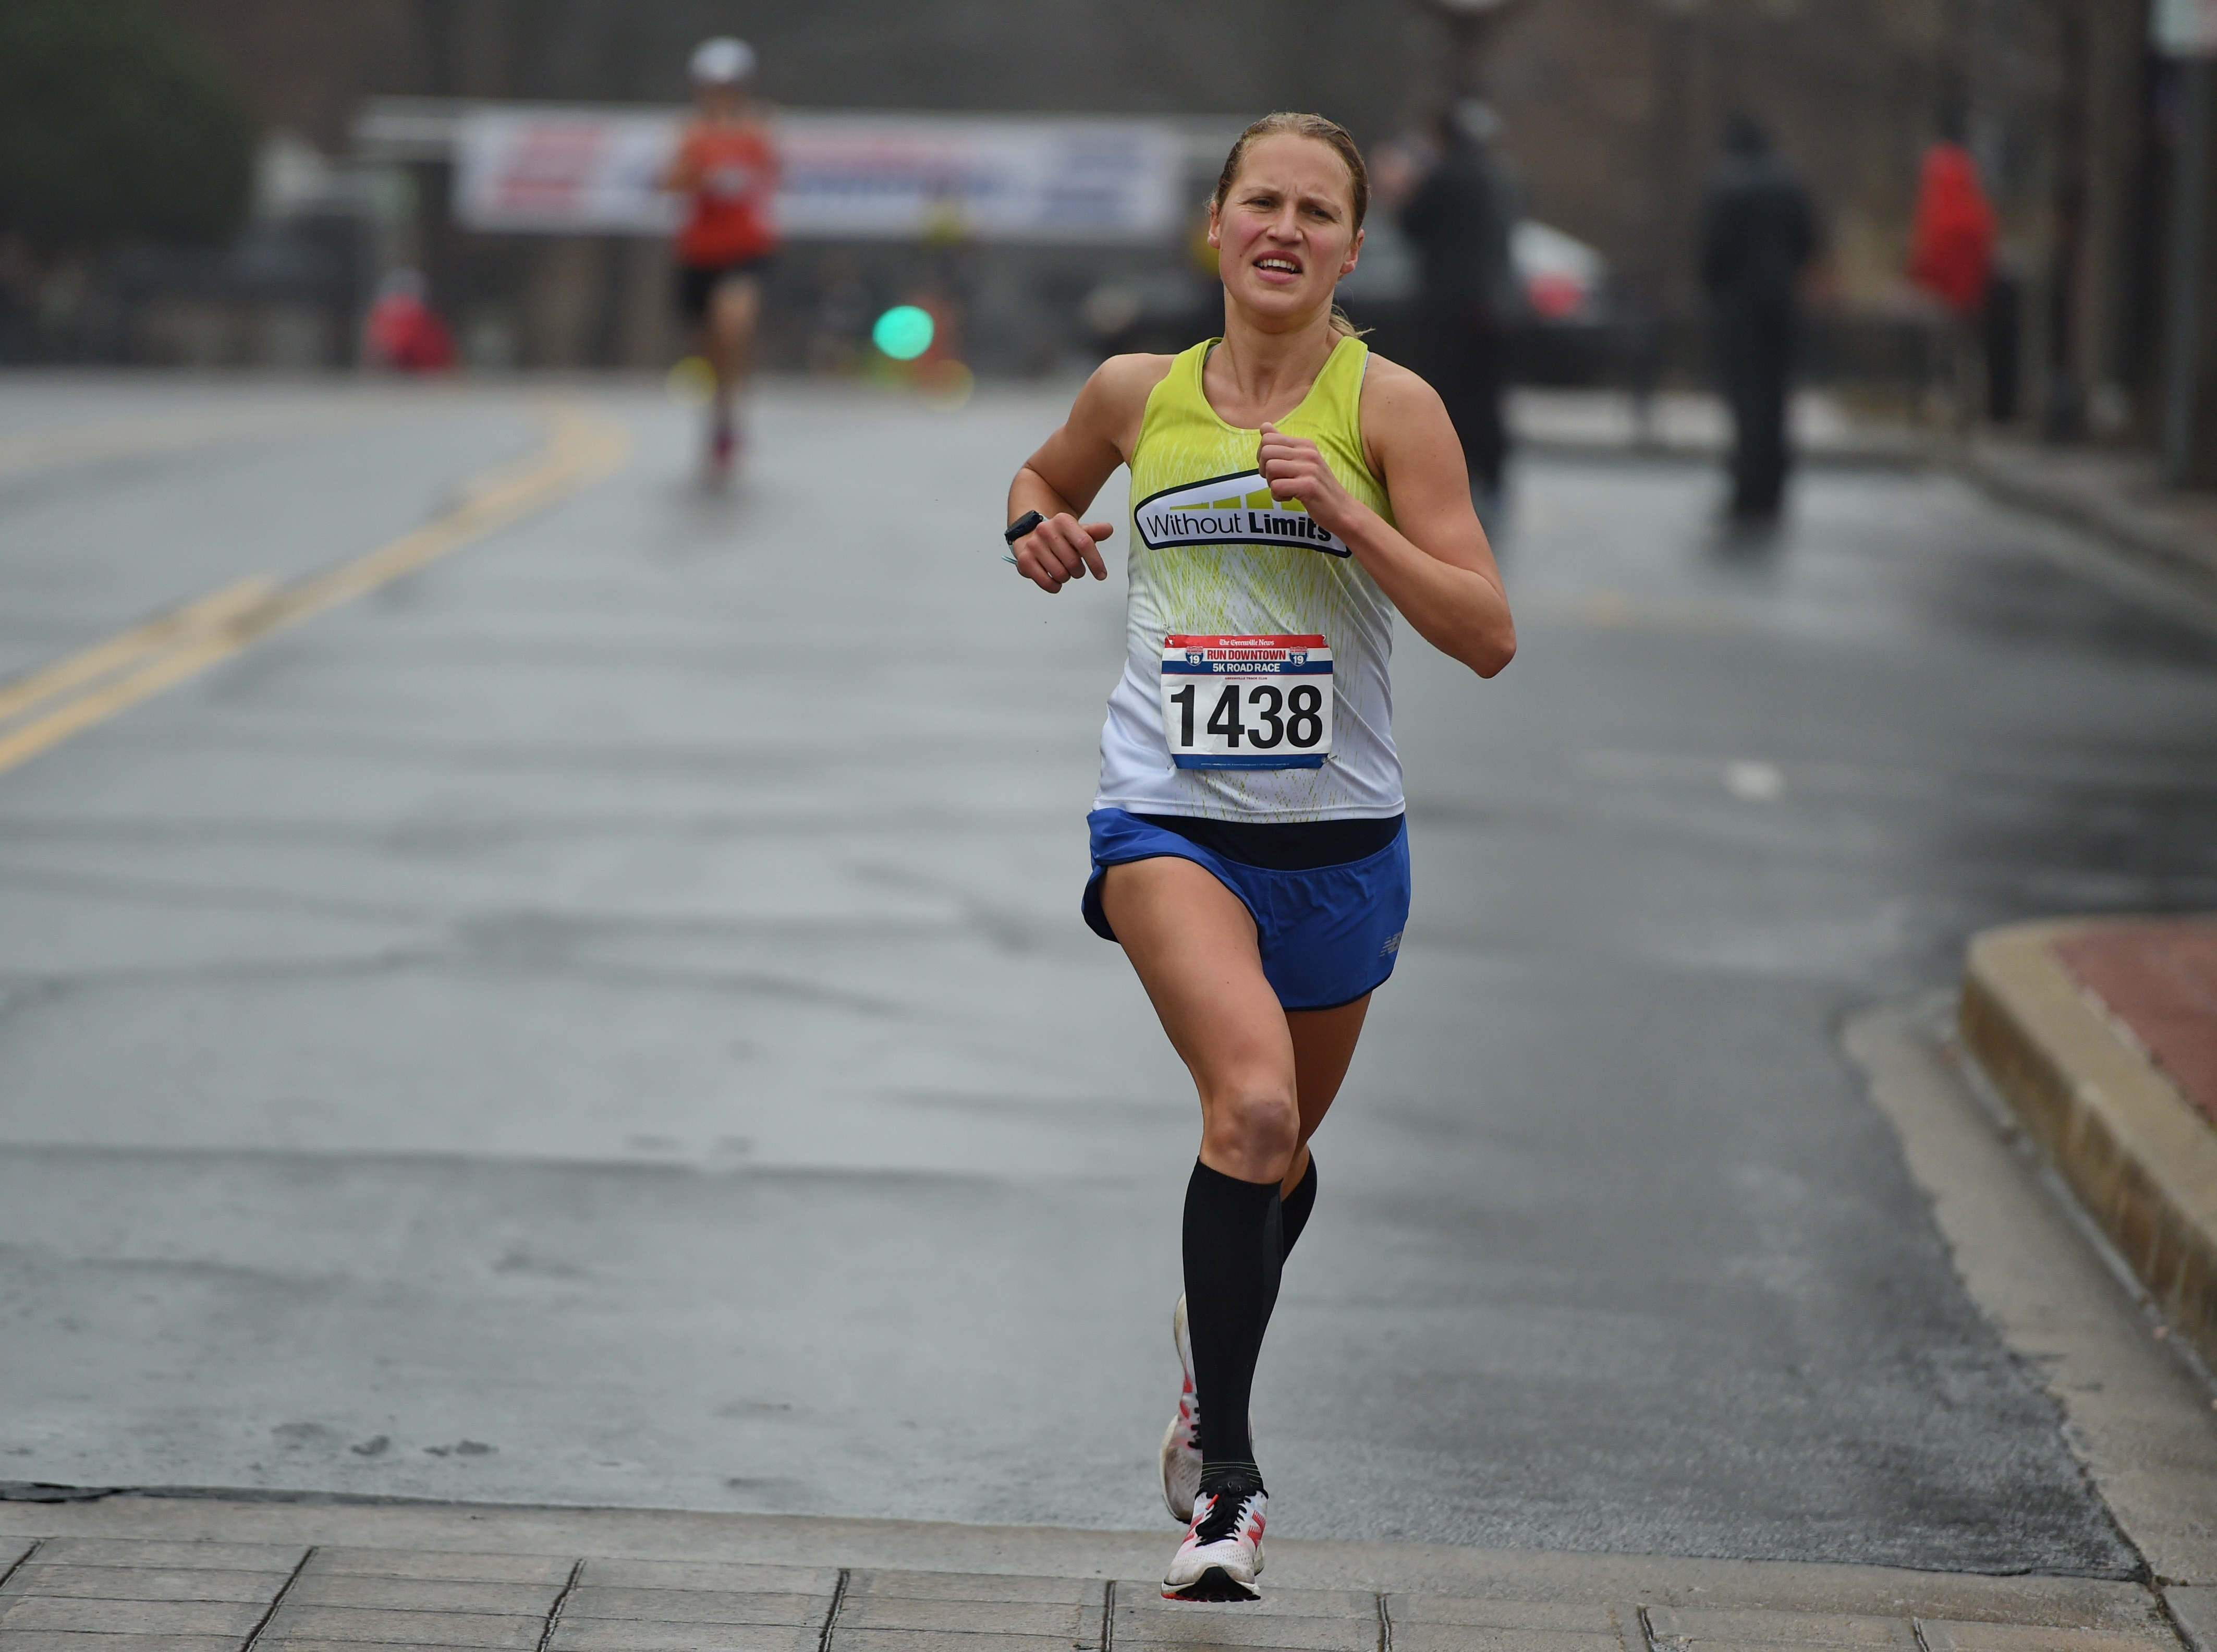 Alyssa Bloomquist won the women's division with a time of 17:20. The annual Greenville News Run Downtown 5K was held Saturday, Jan. 19, 2019.